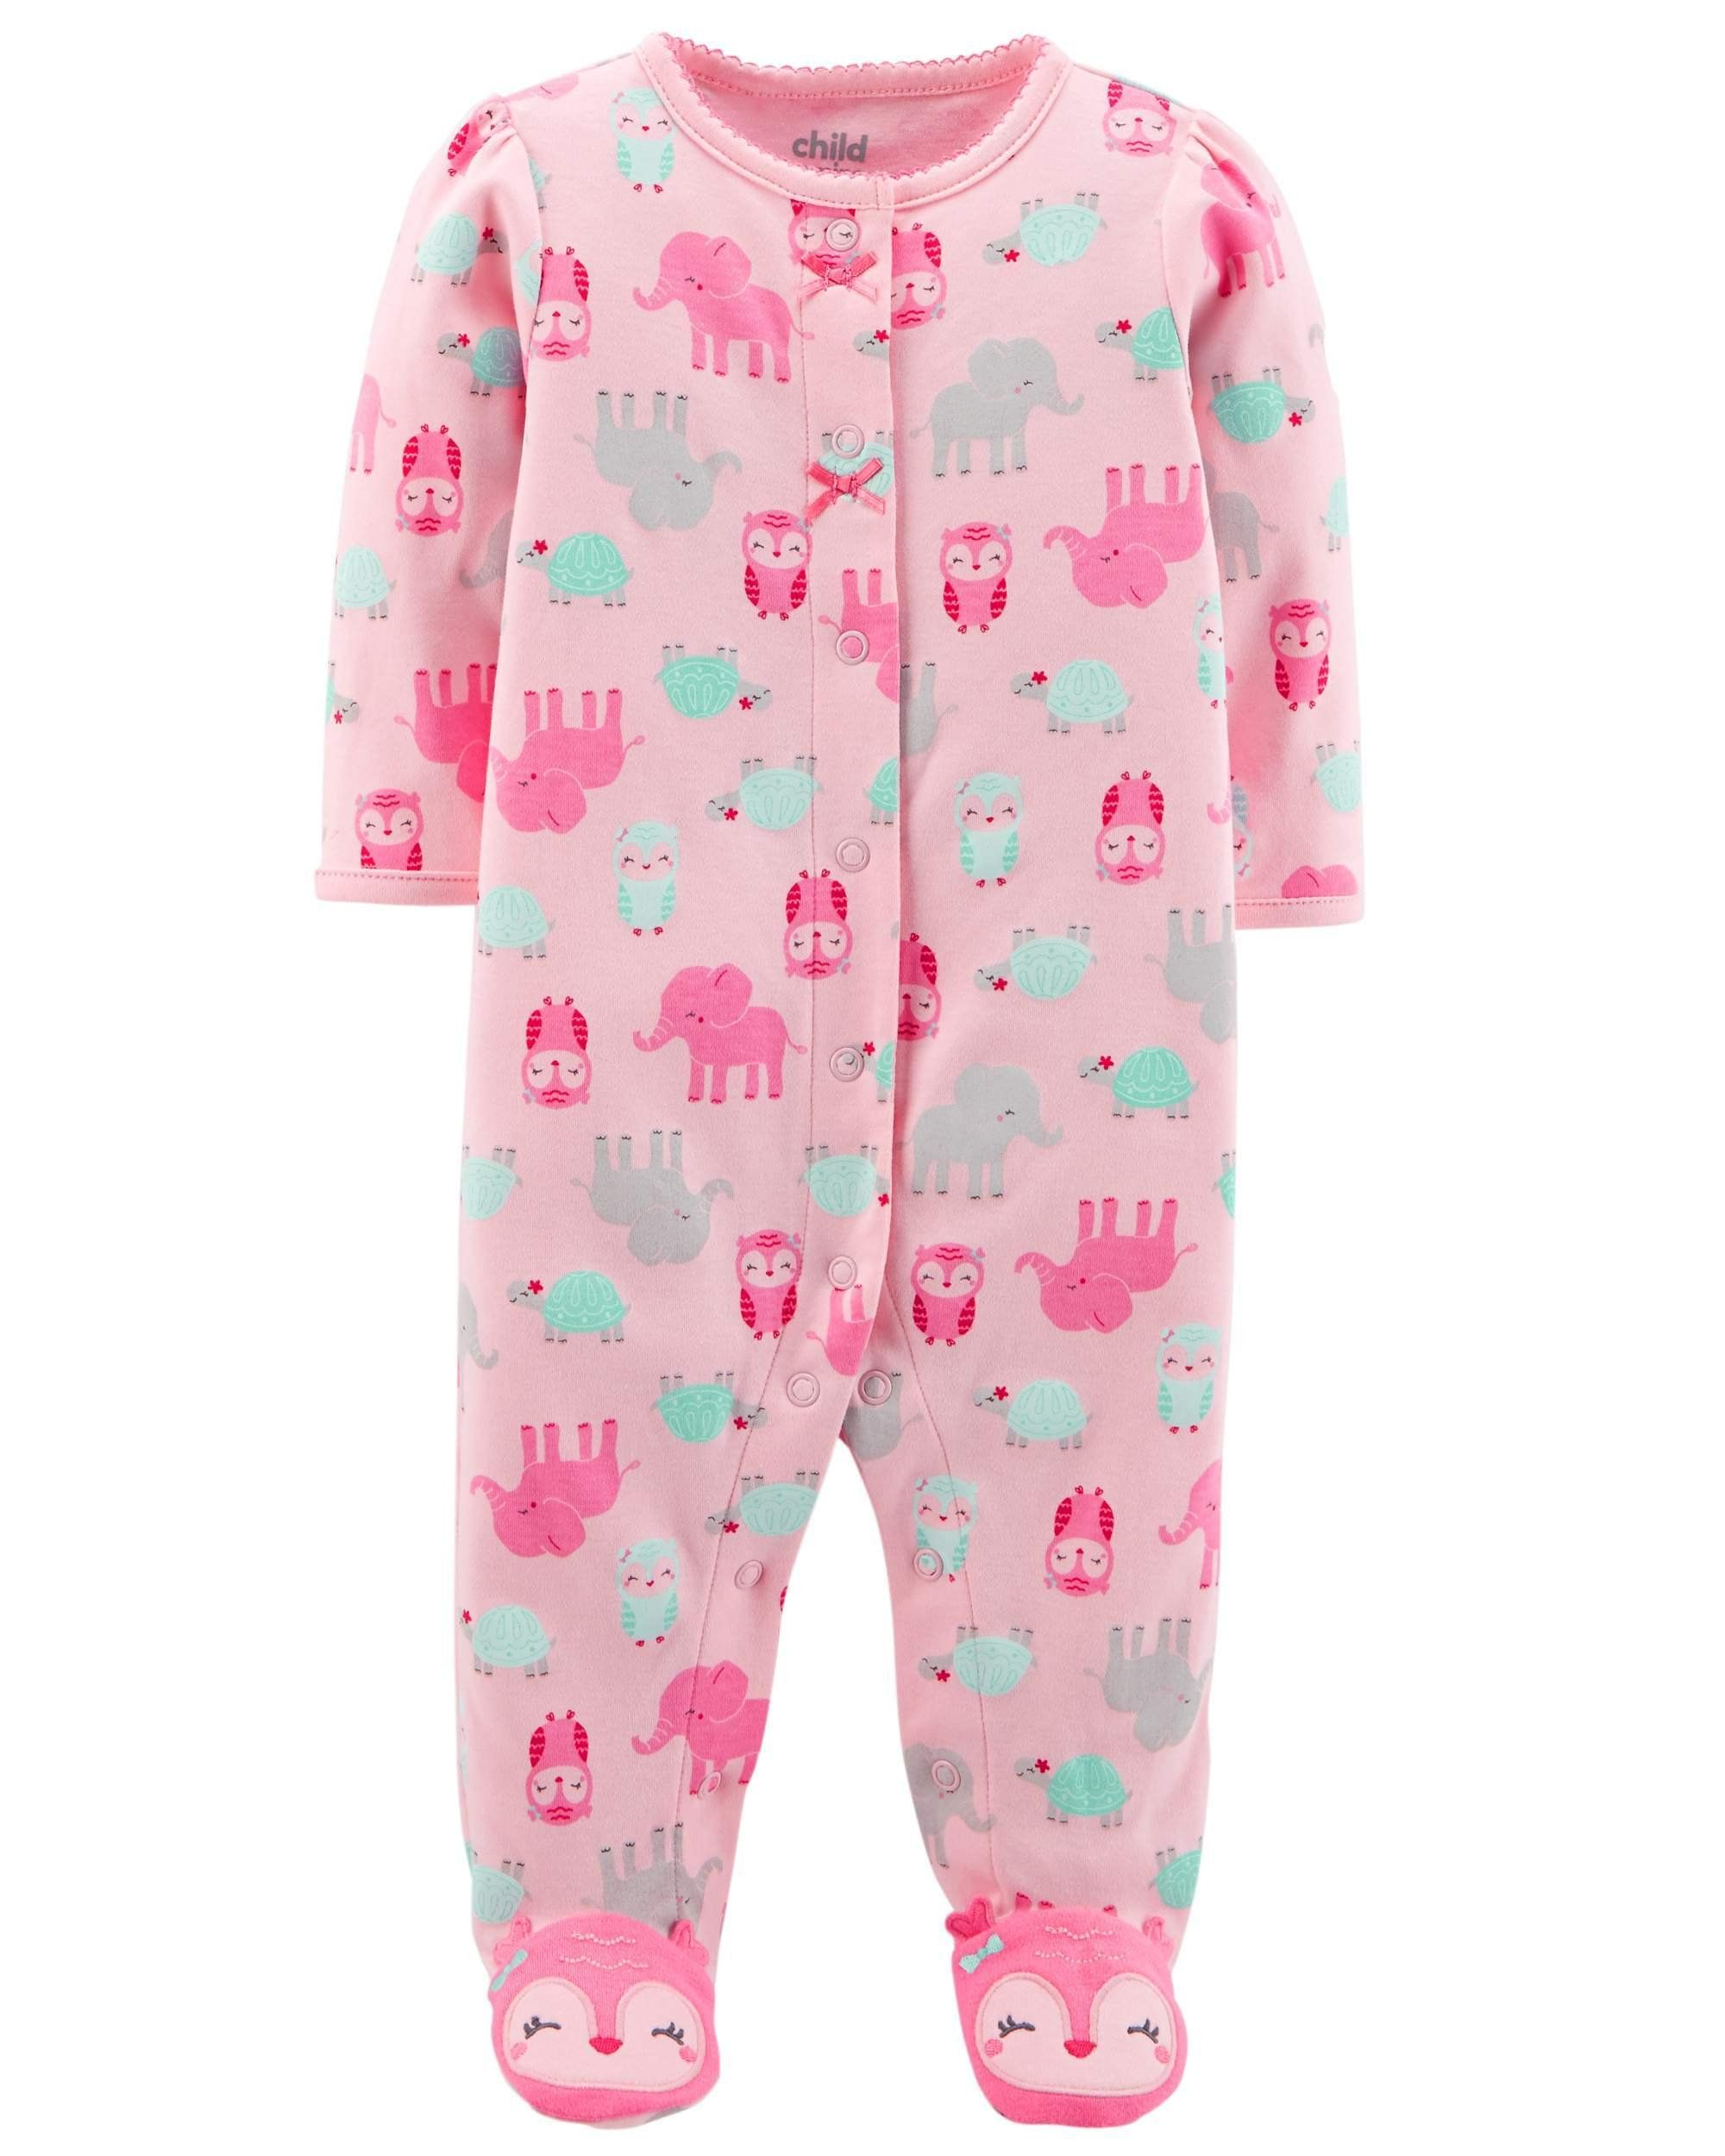 70f8ee2c2 Child of Mine Carters Preemie Baby Girl Sleepers Pajamas Sleep n ...